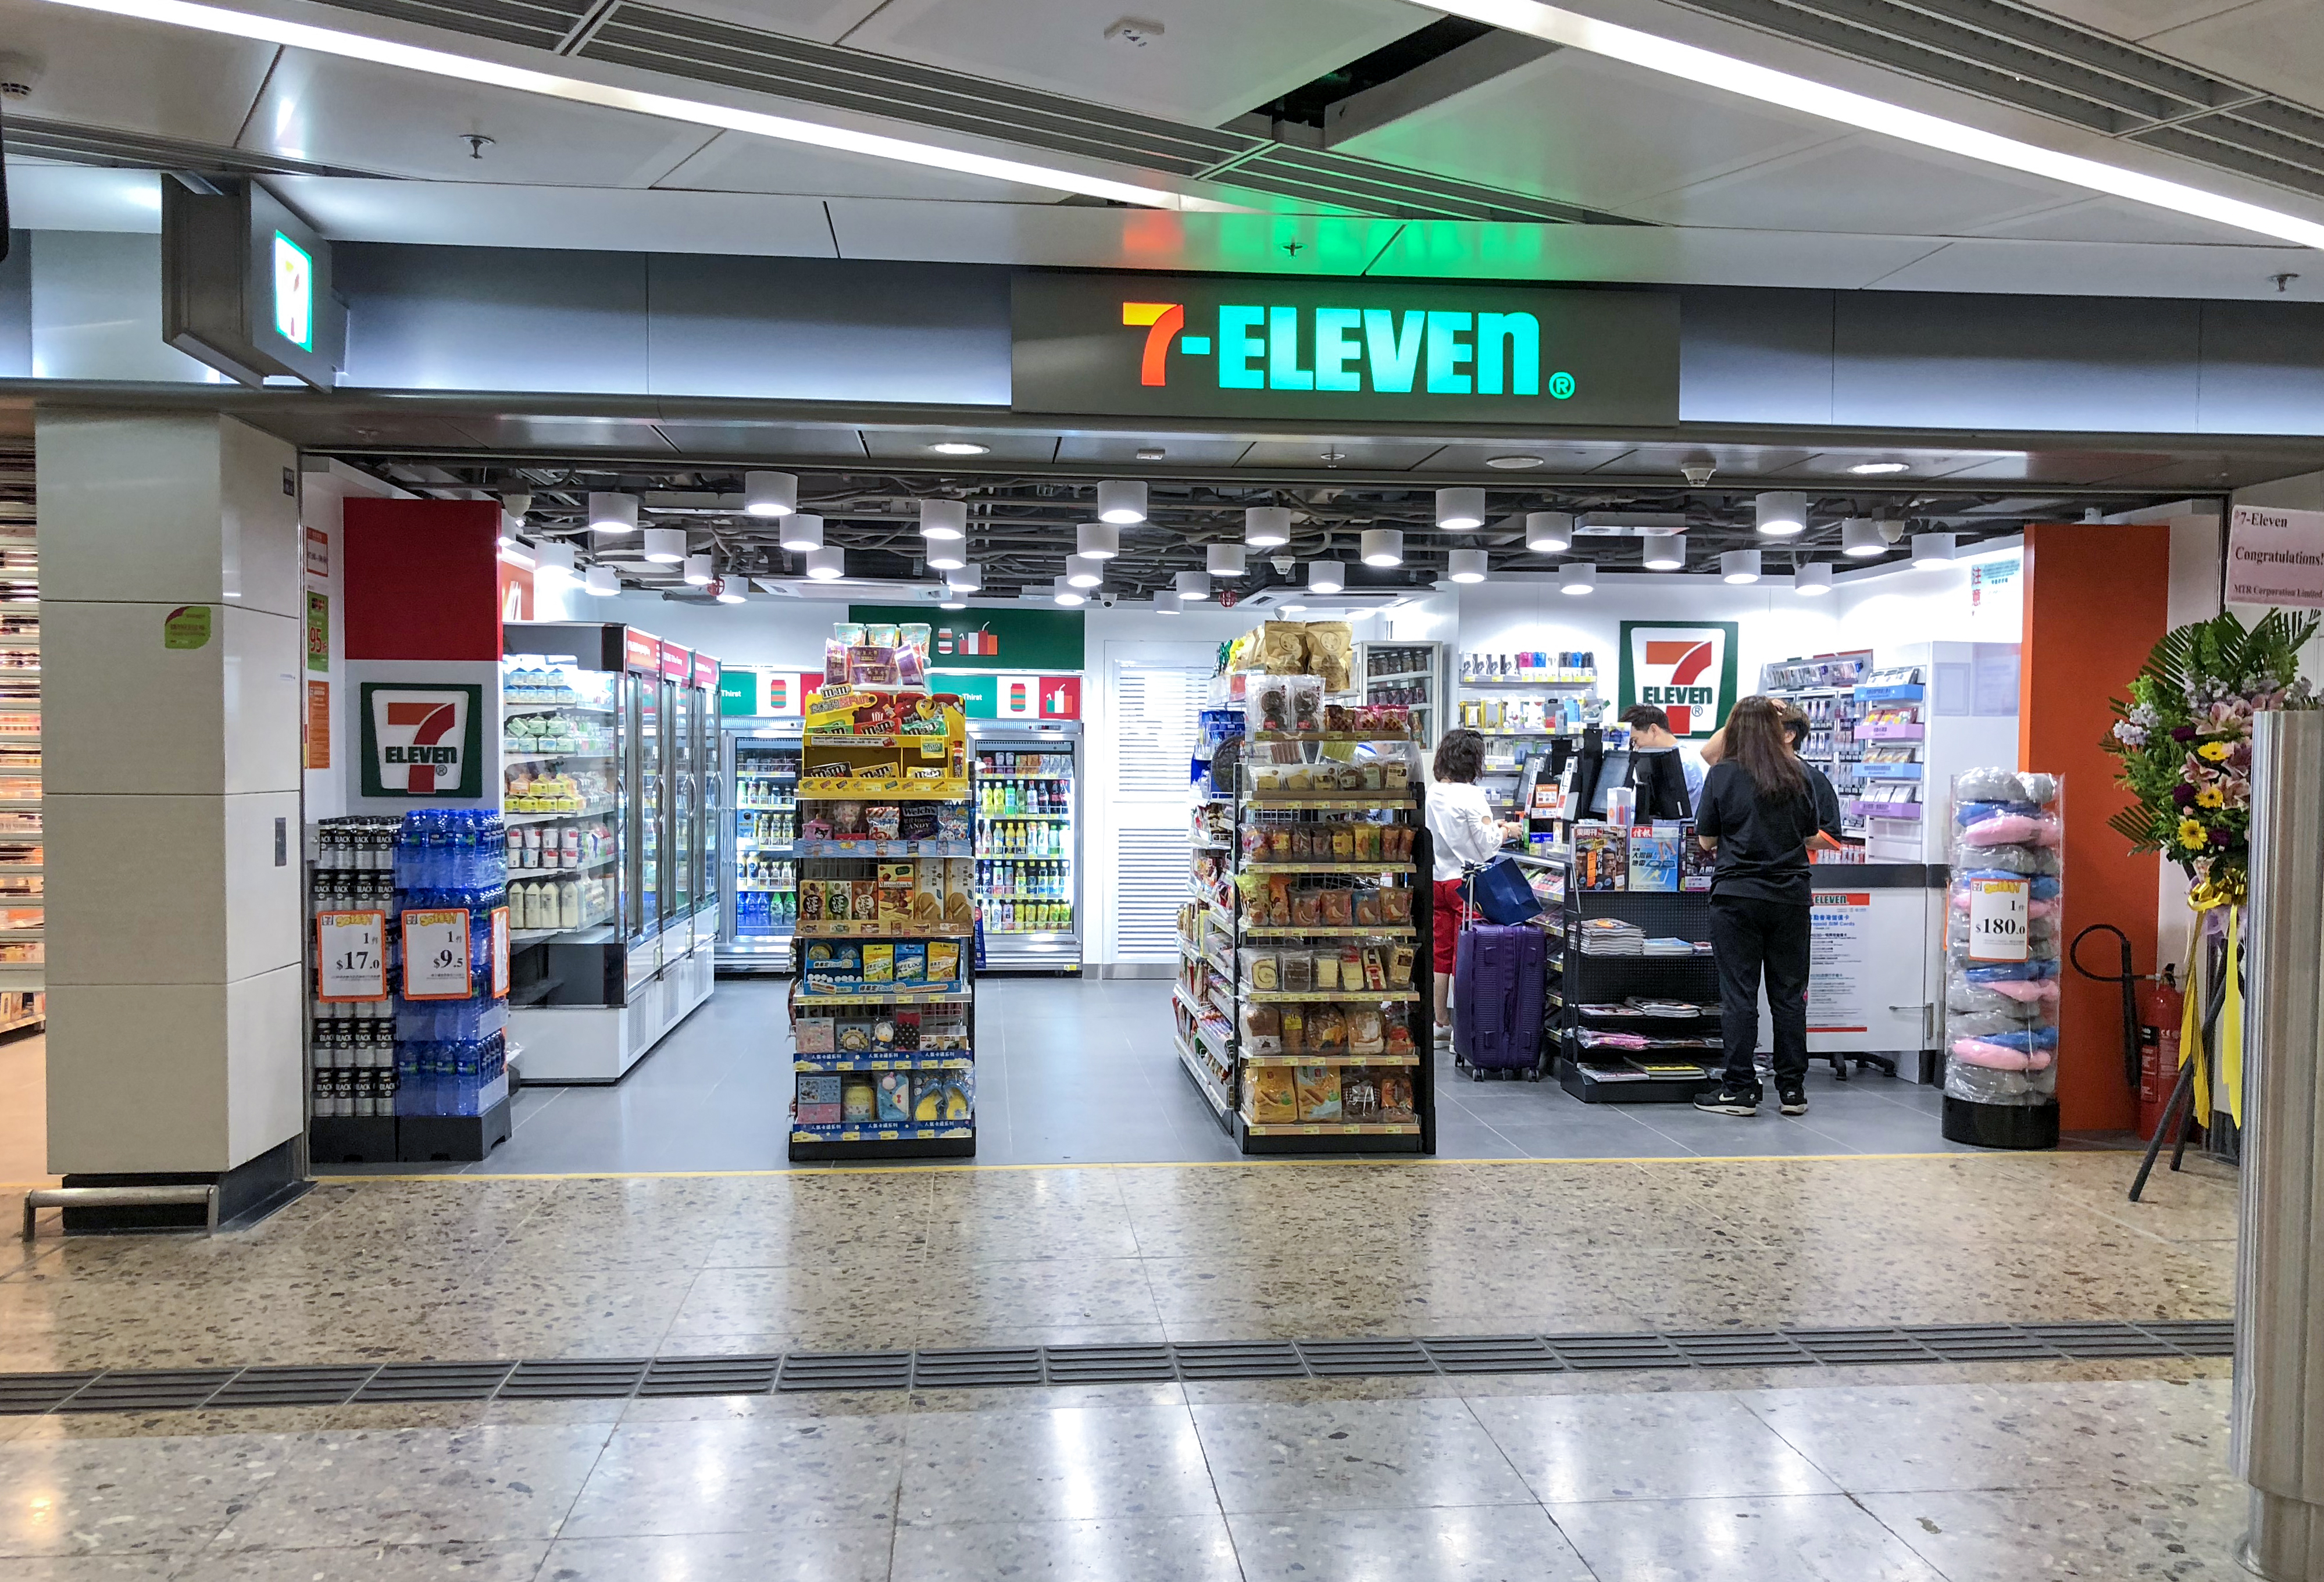 File:7-Eleven store at HK West Kowloon Station (20180923072413) jpg